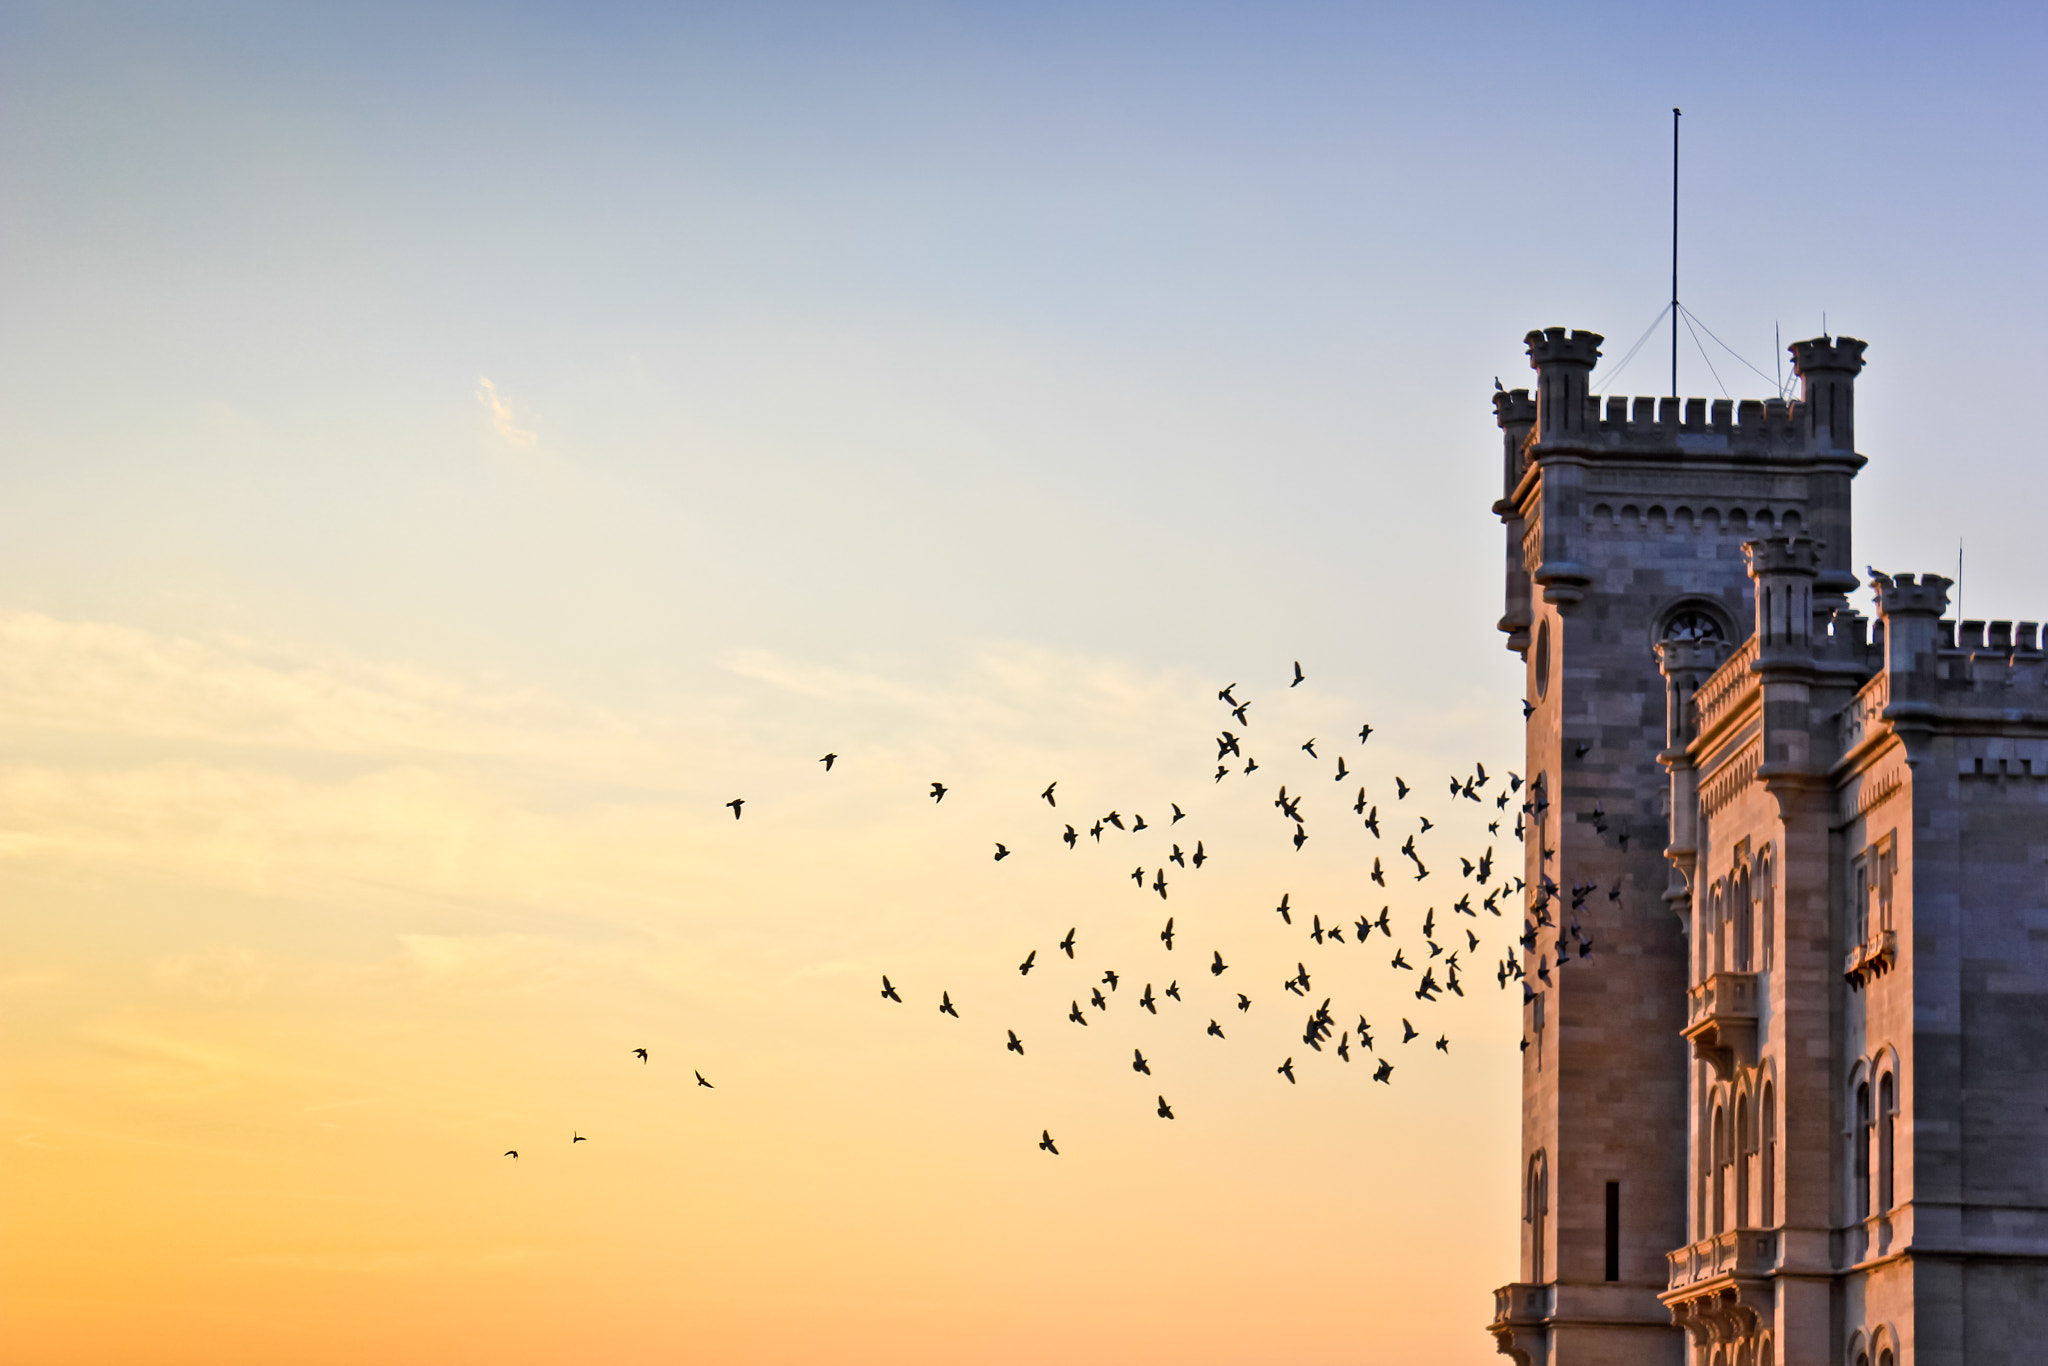 Photograph Flight at Sunset by Matteo Miotto on 500px